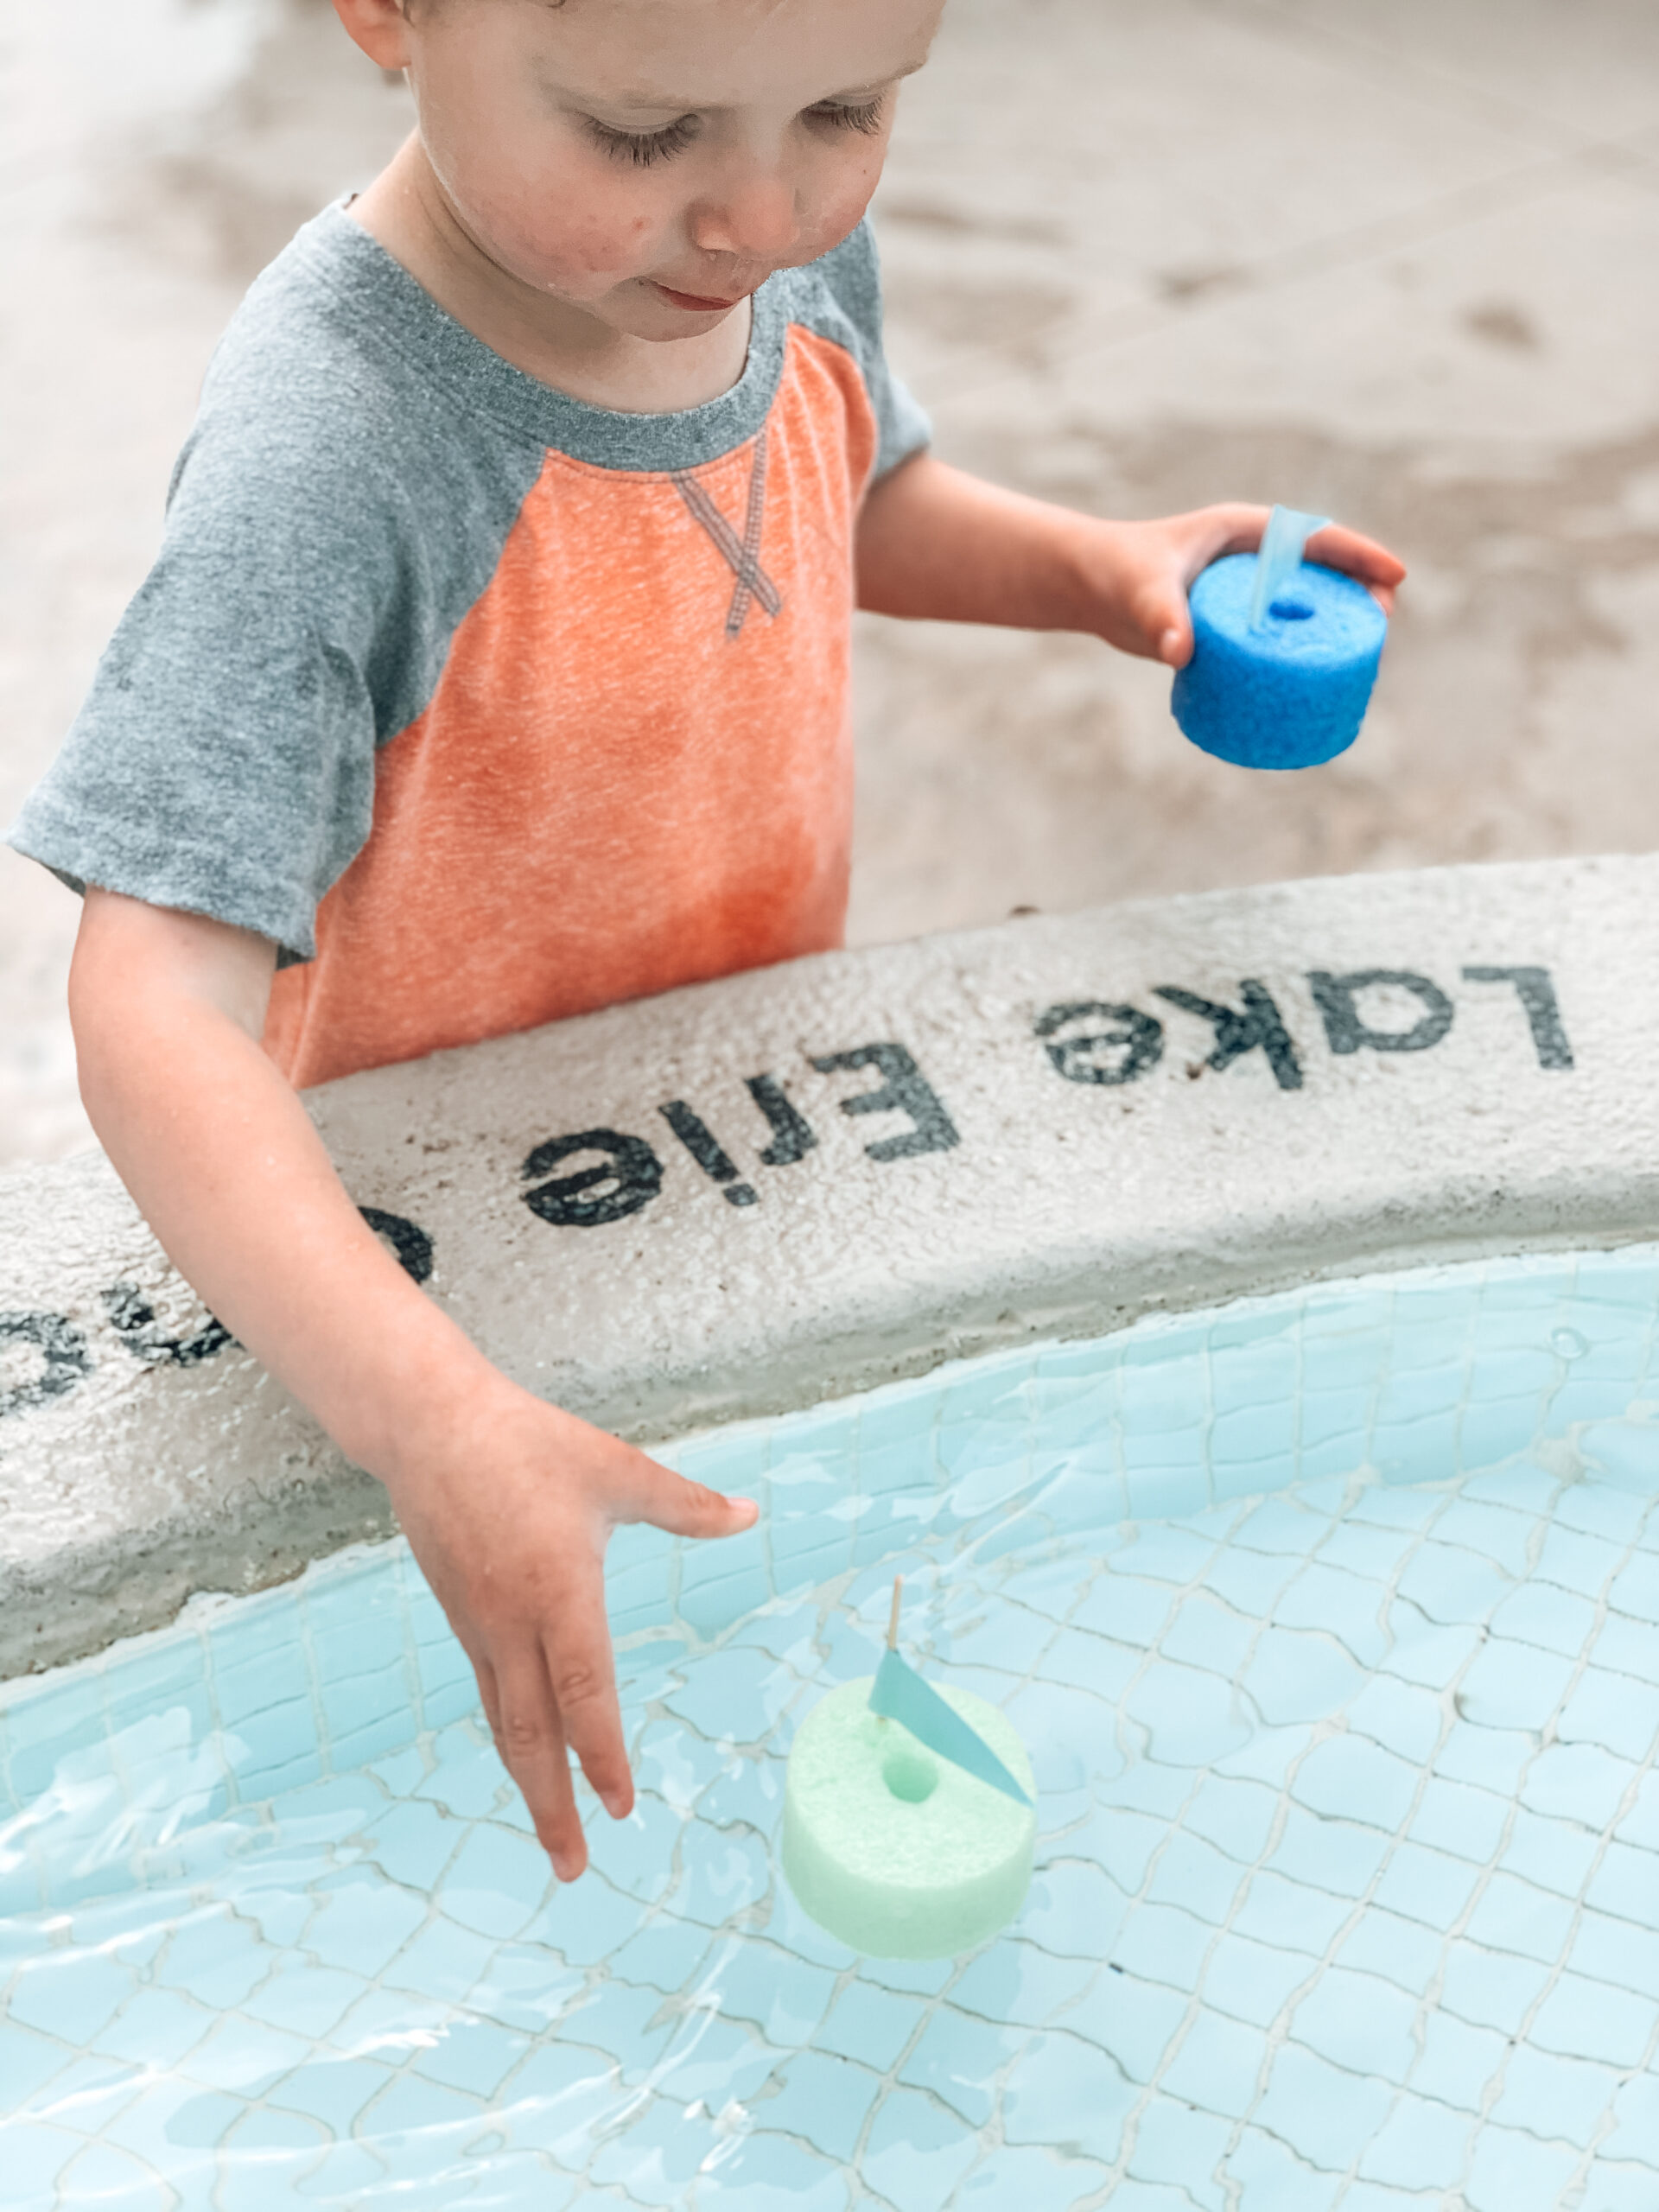 Kids playing with DIY toy boats made of pool noodles